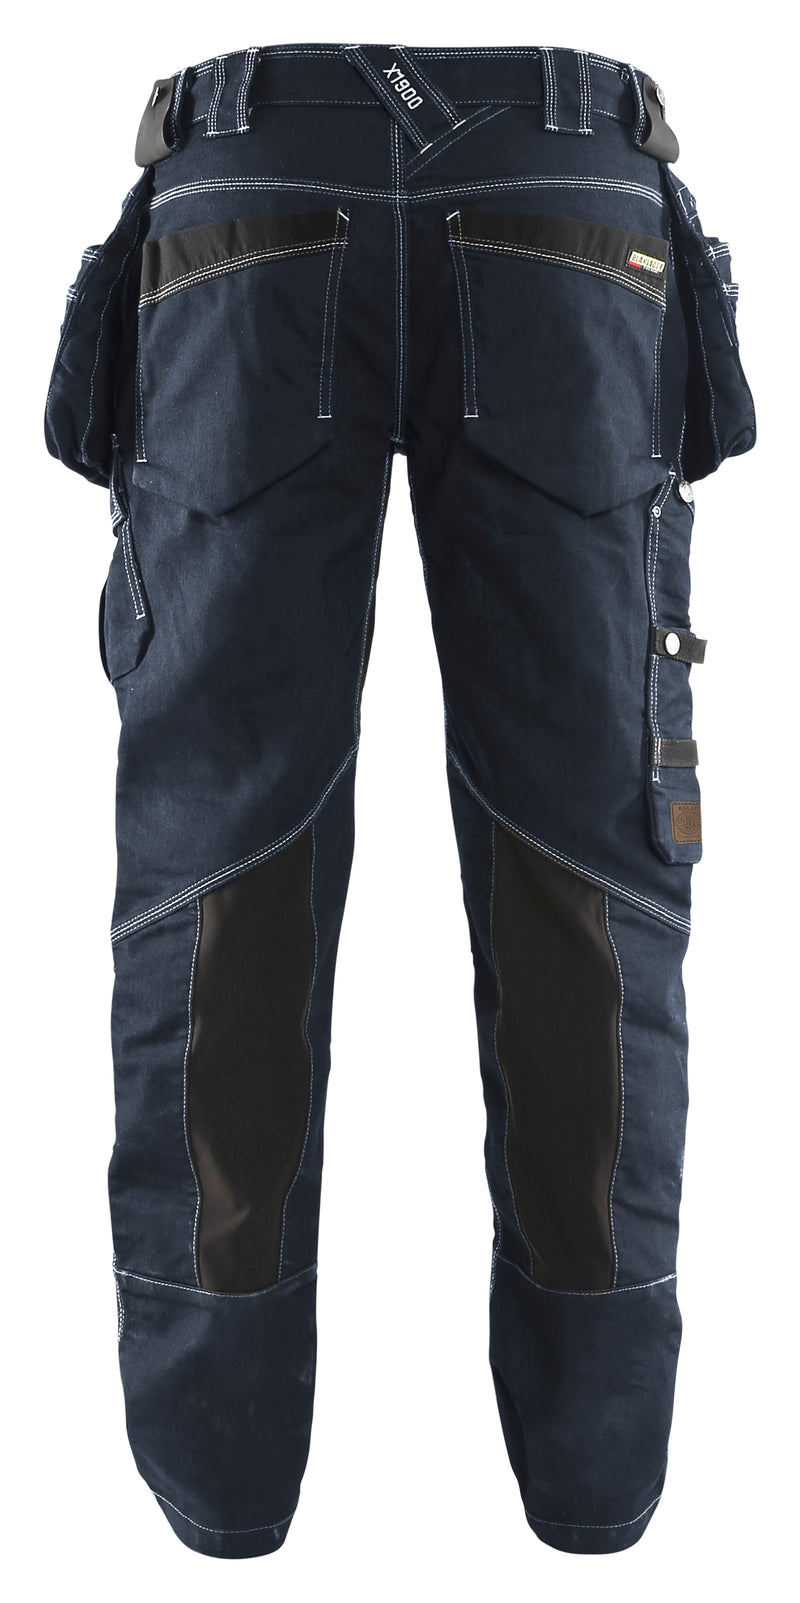 Blaklader 1990 Stretch Denim Donkerblauw